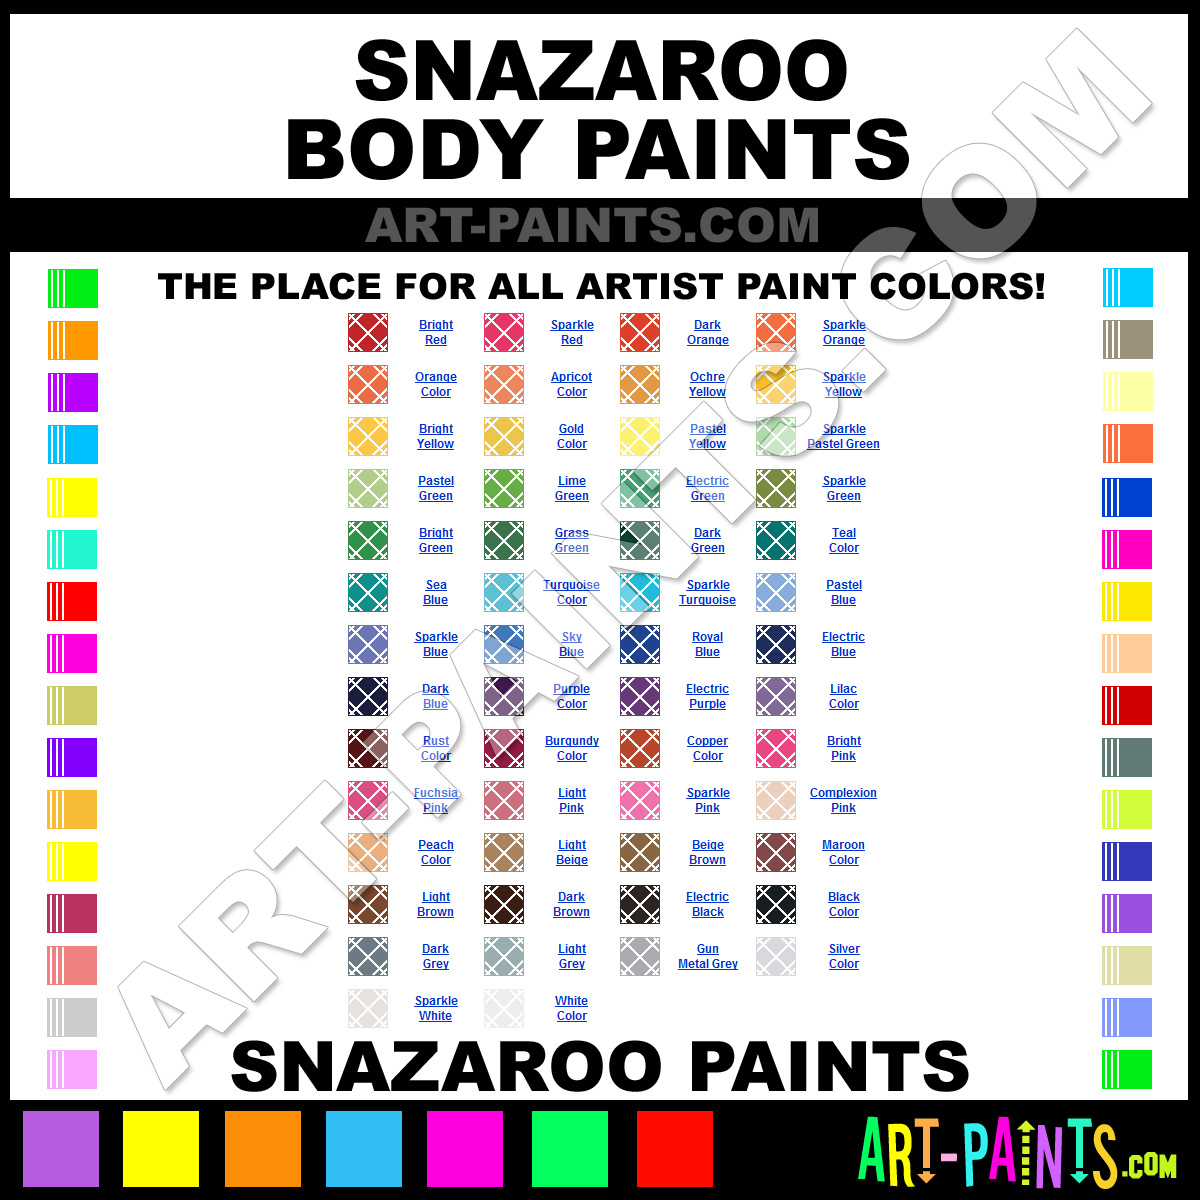 Paint Colors And Brands: Snazaroo Body And Face Stage Makeup And Theater Paint